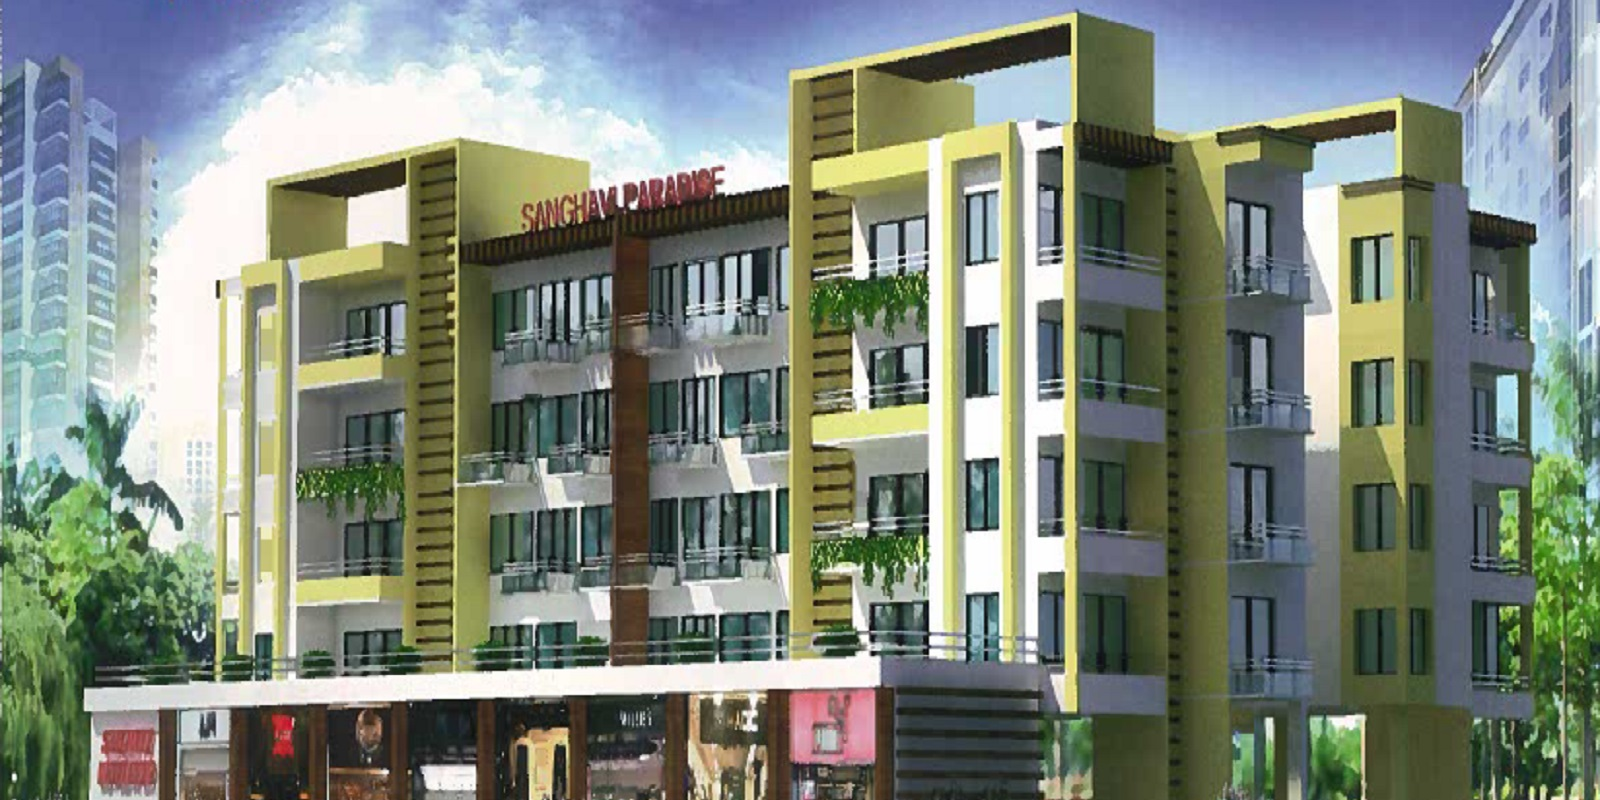 sanghavi paradise a building project large image1